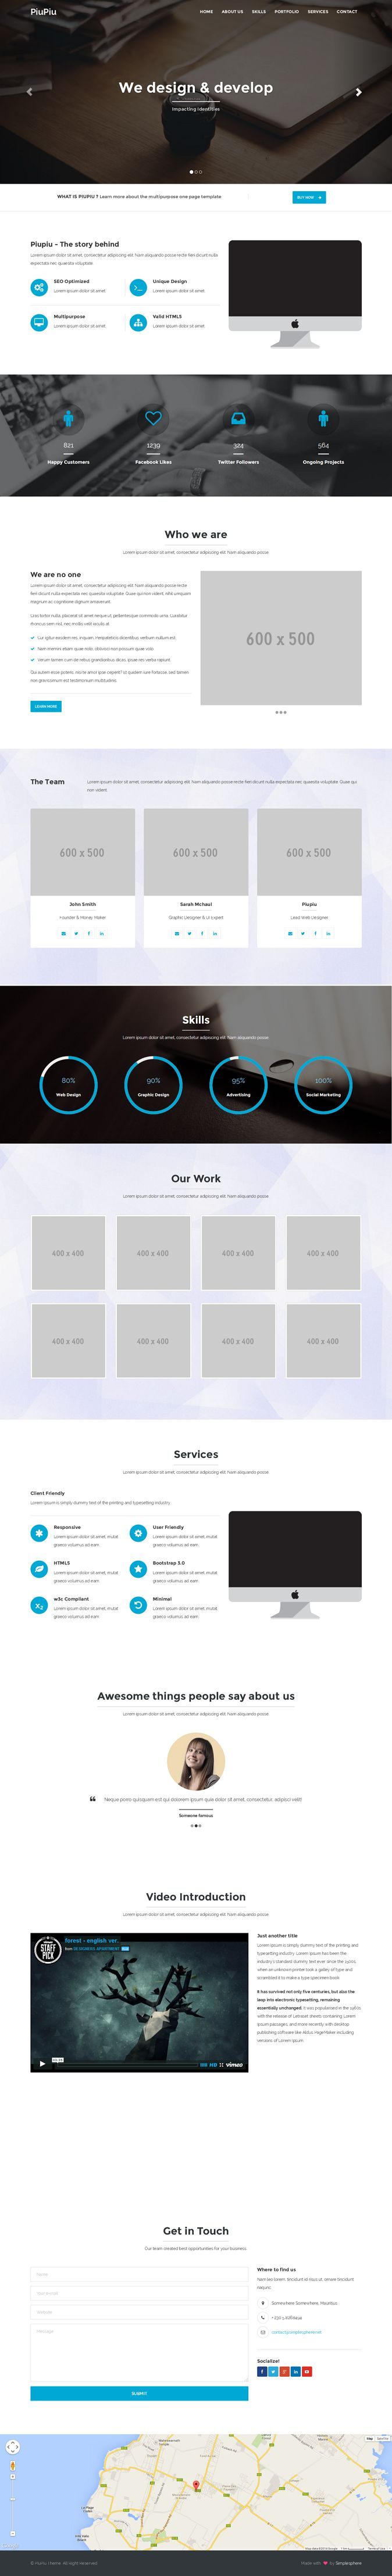 PiuPiu is a clean and modern one page template designed to fit all needs. Consice and client oriented, the minimal design can be easily adapted and customized. It is fully responsive and can be used for for nearly all purposes: Freelance, Company, Launch, Web Design, and so on.